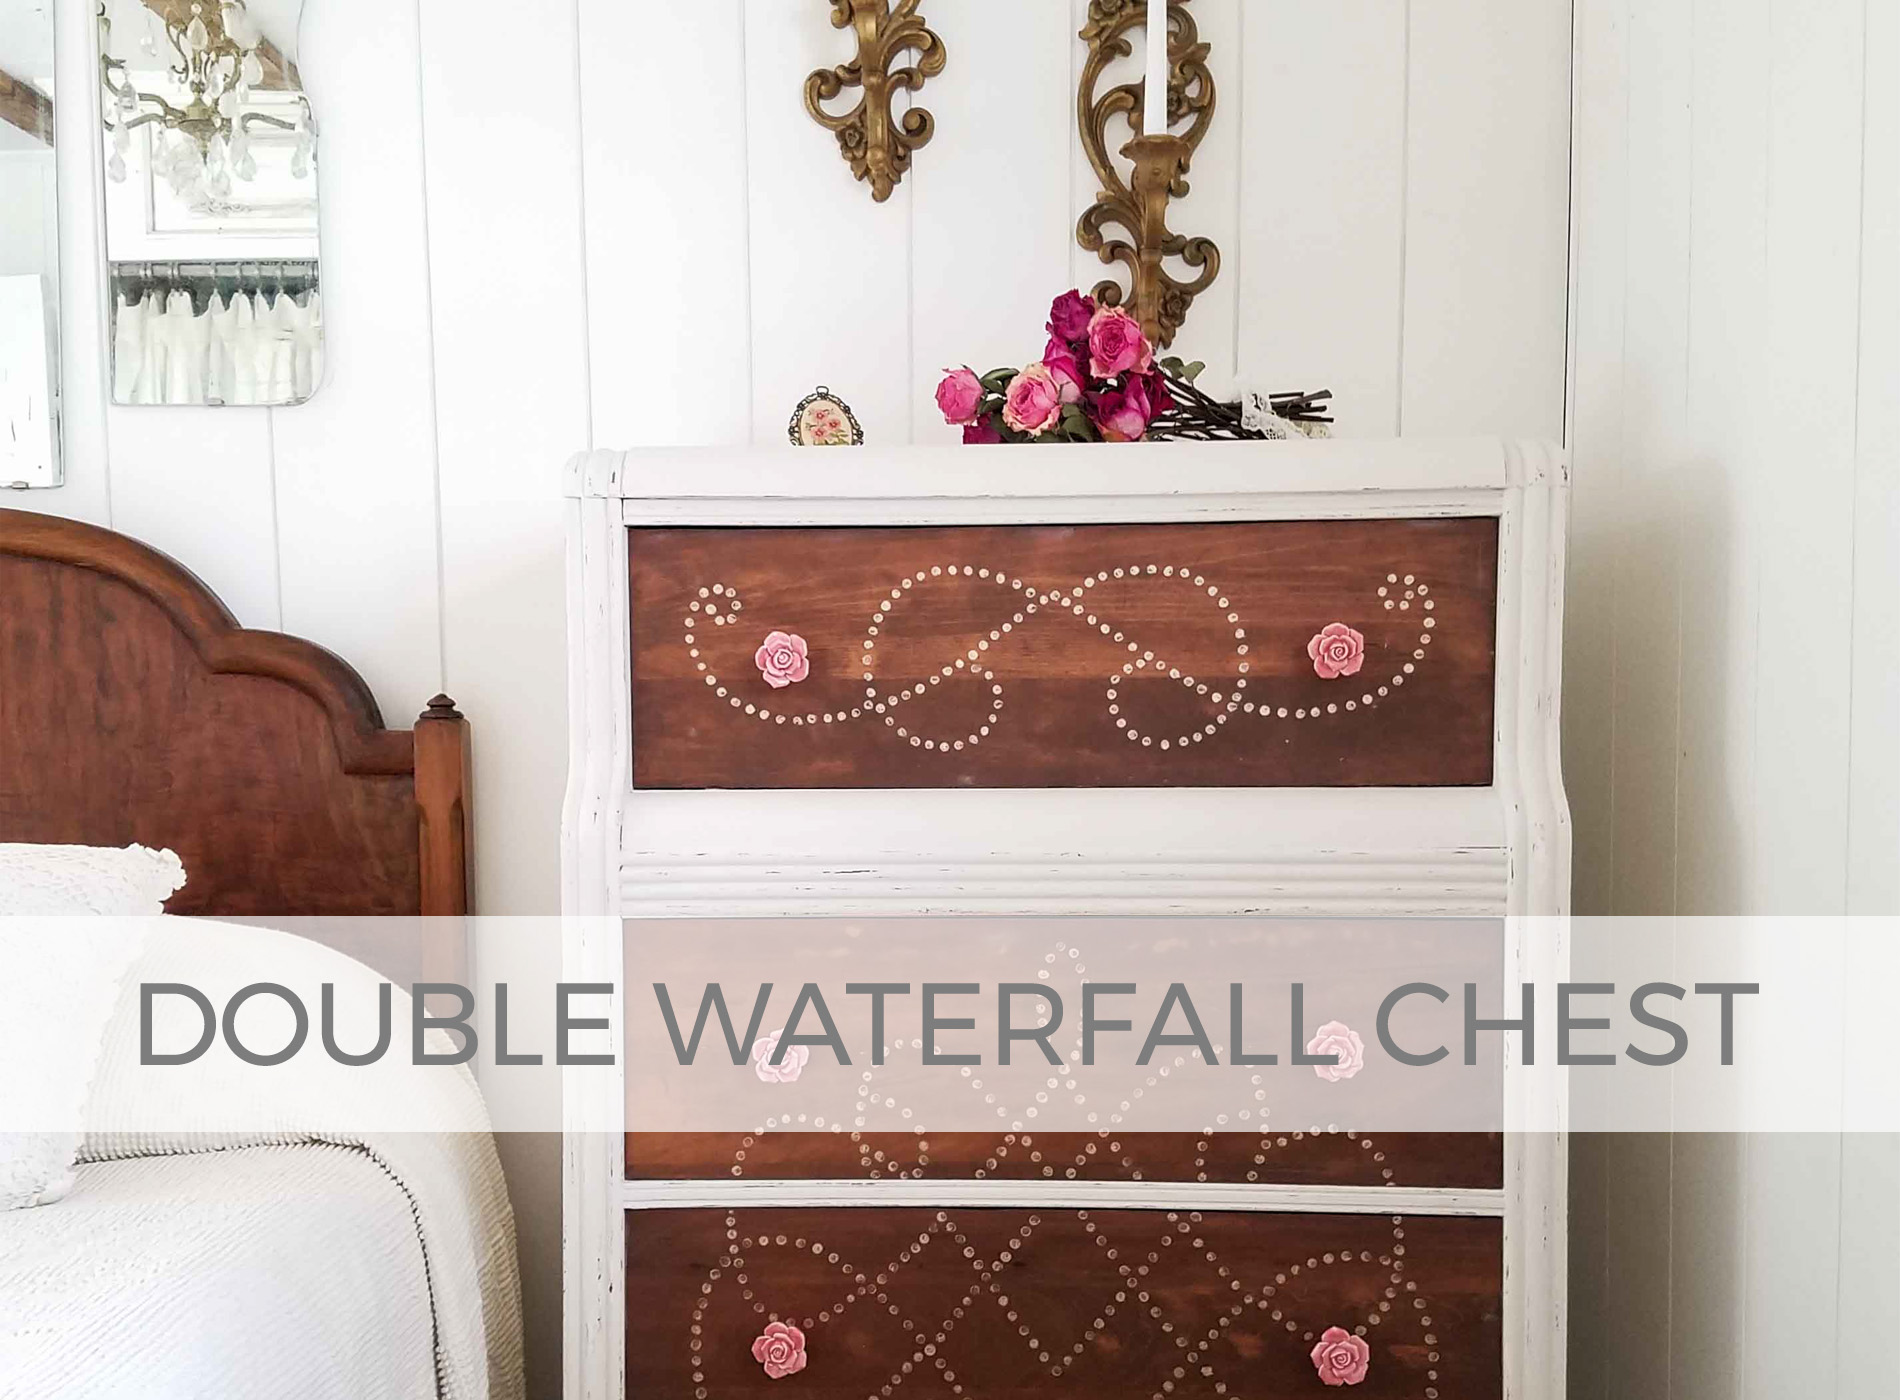 Antique Art Deco Double Waterfall Chest of Drawers by Prodigal Pieces | prodigalpieces.com #prodigalpieces